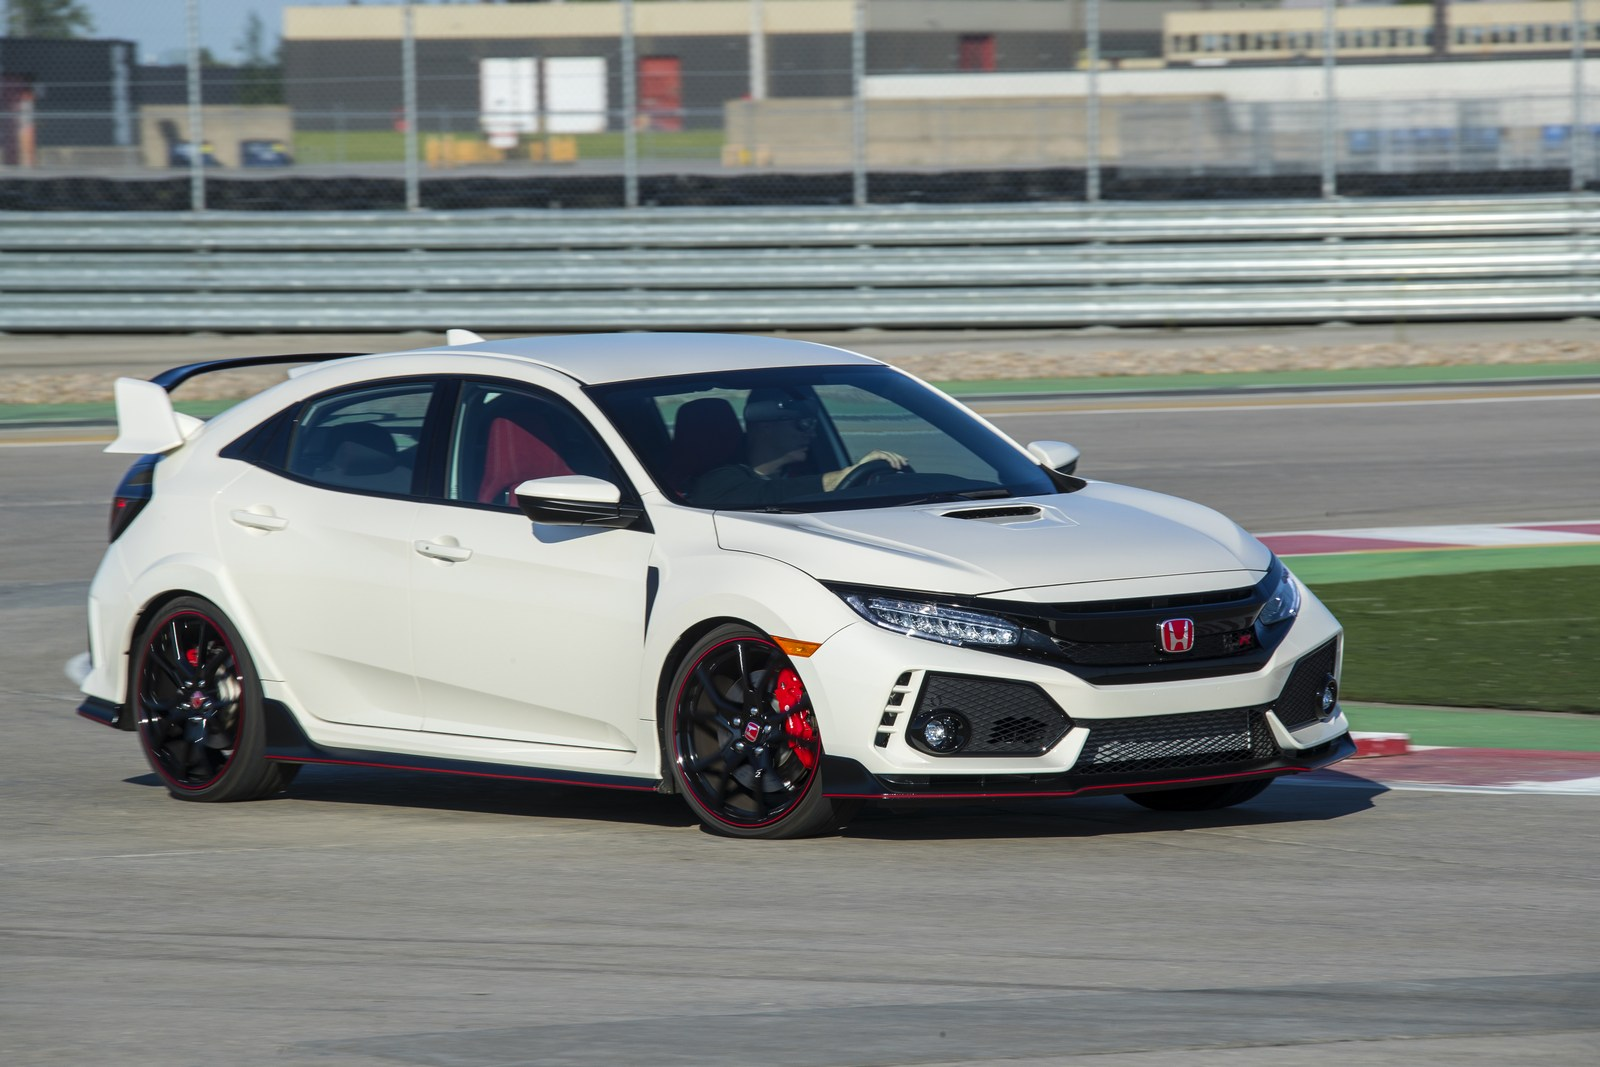 2018 honda civic type r price bumped to 34 100 no entry for Buy honda civic type r